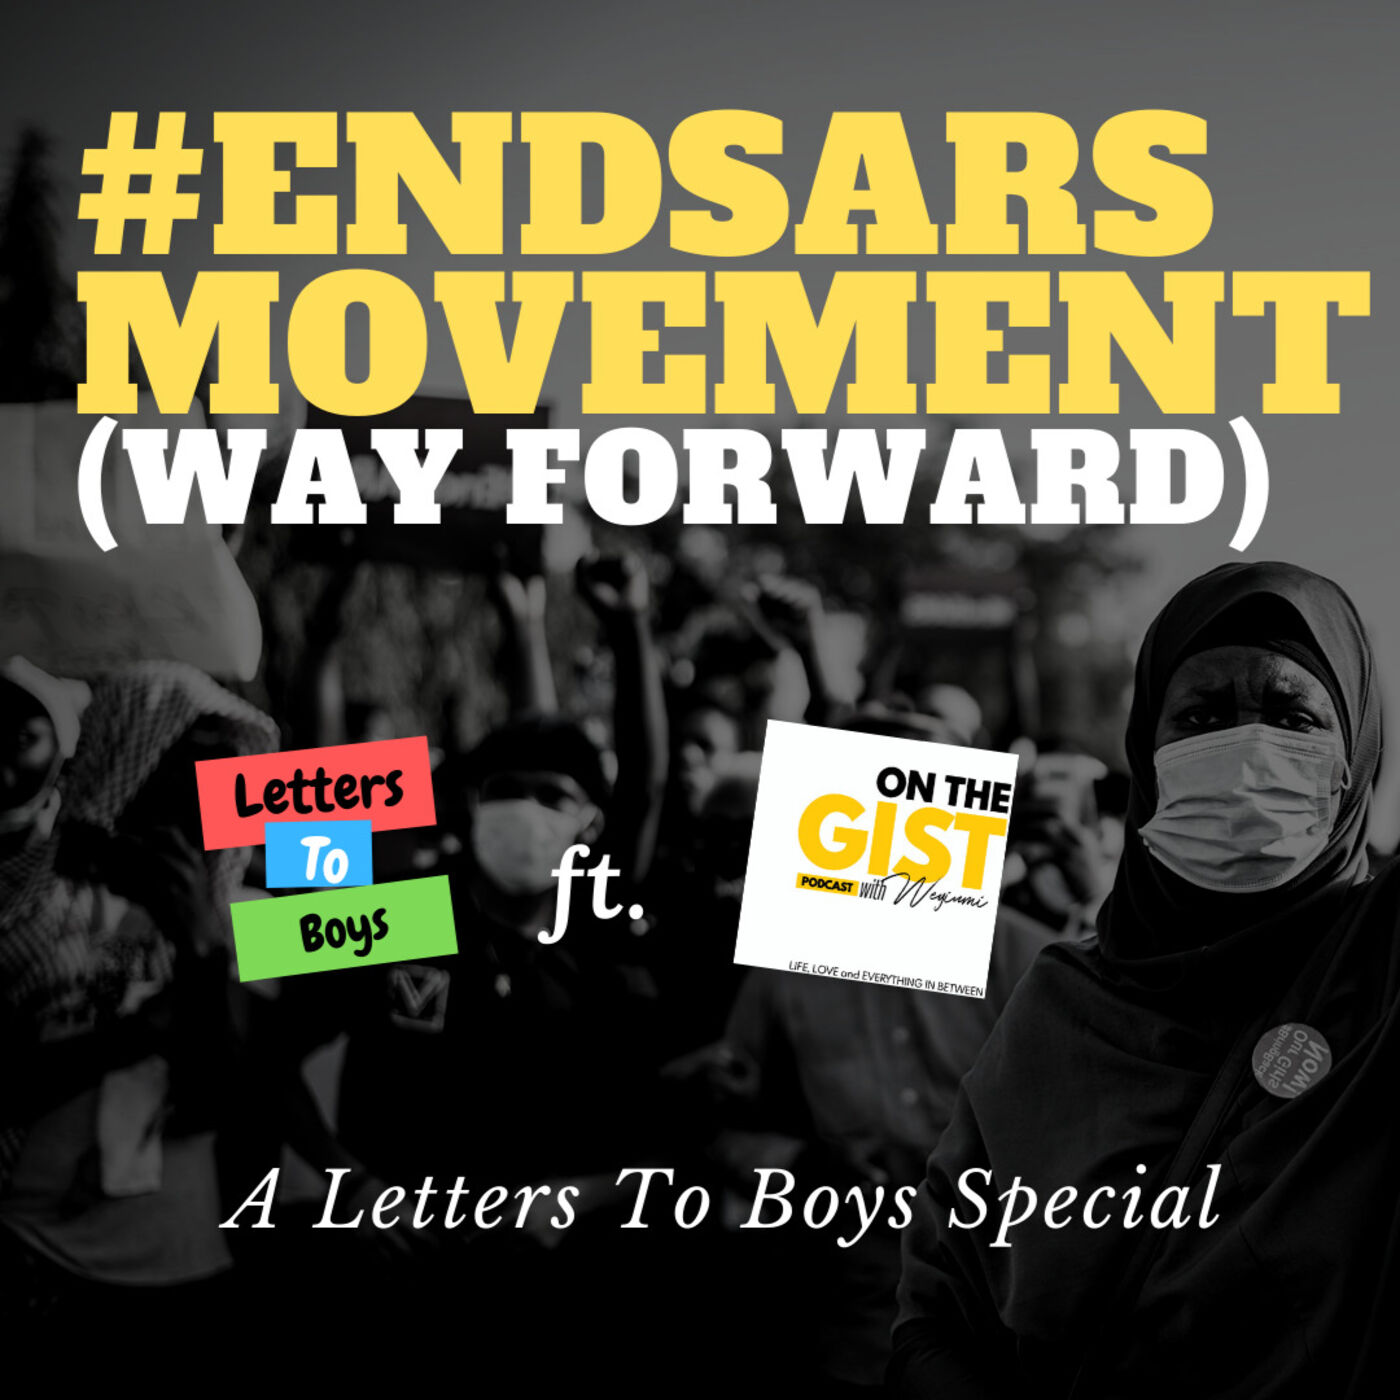 ENDSARS MOVEMENT: How I Survived 9 bullets from Sars | A Letters To Boys Special